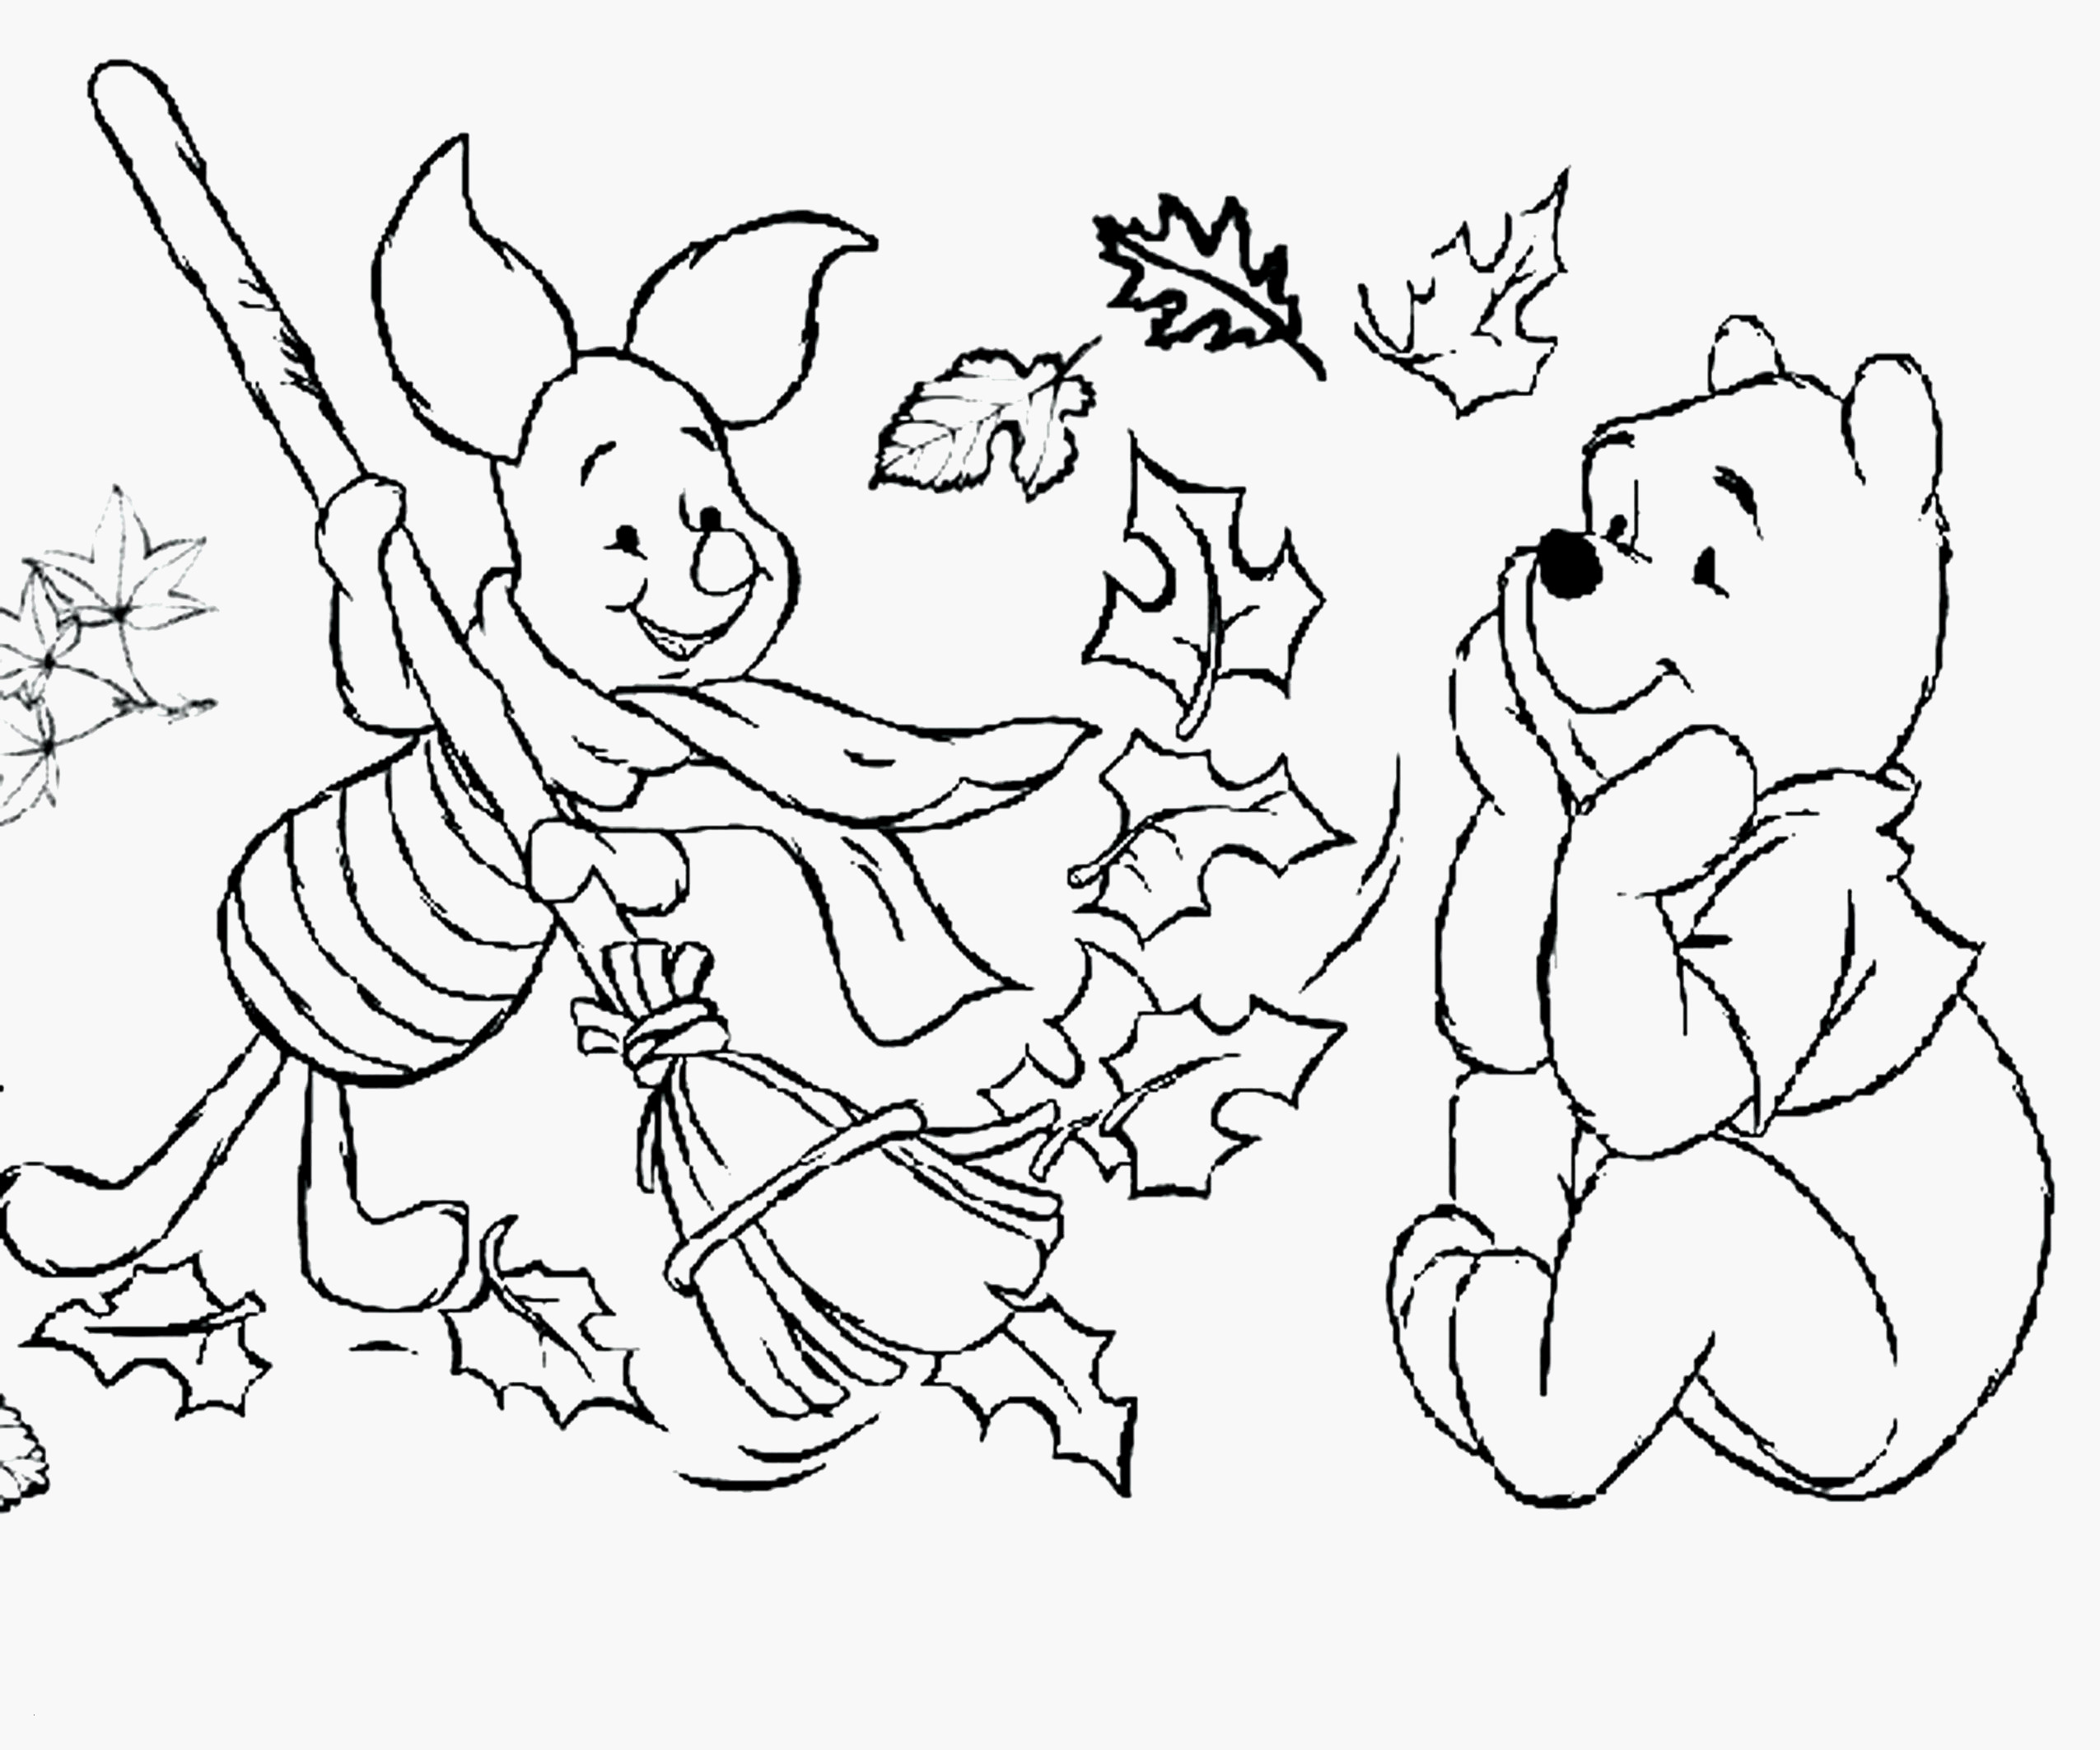 spirit coloring pages Collection-Spirit Riding Free Coloring Pages Fruit the Spirit Coloring Page 4-k